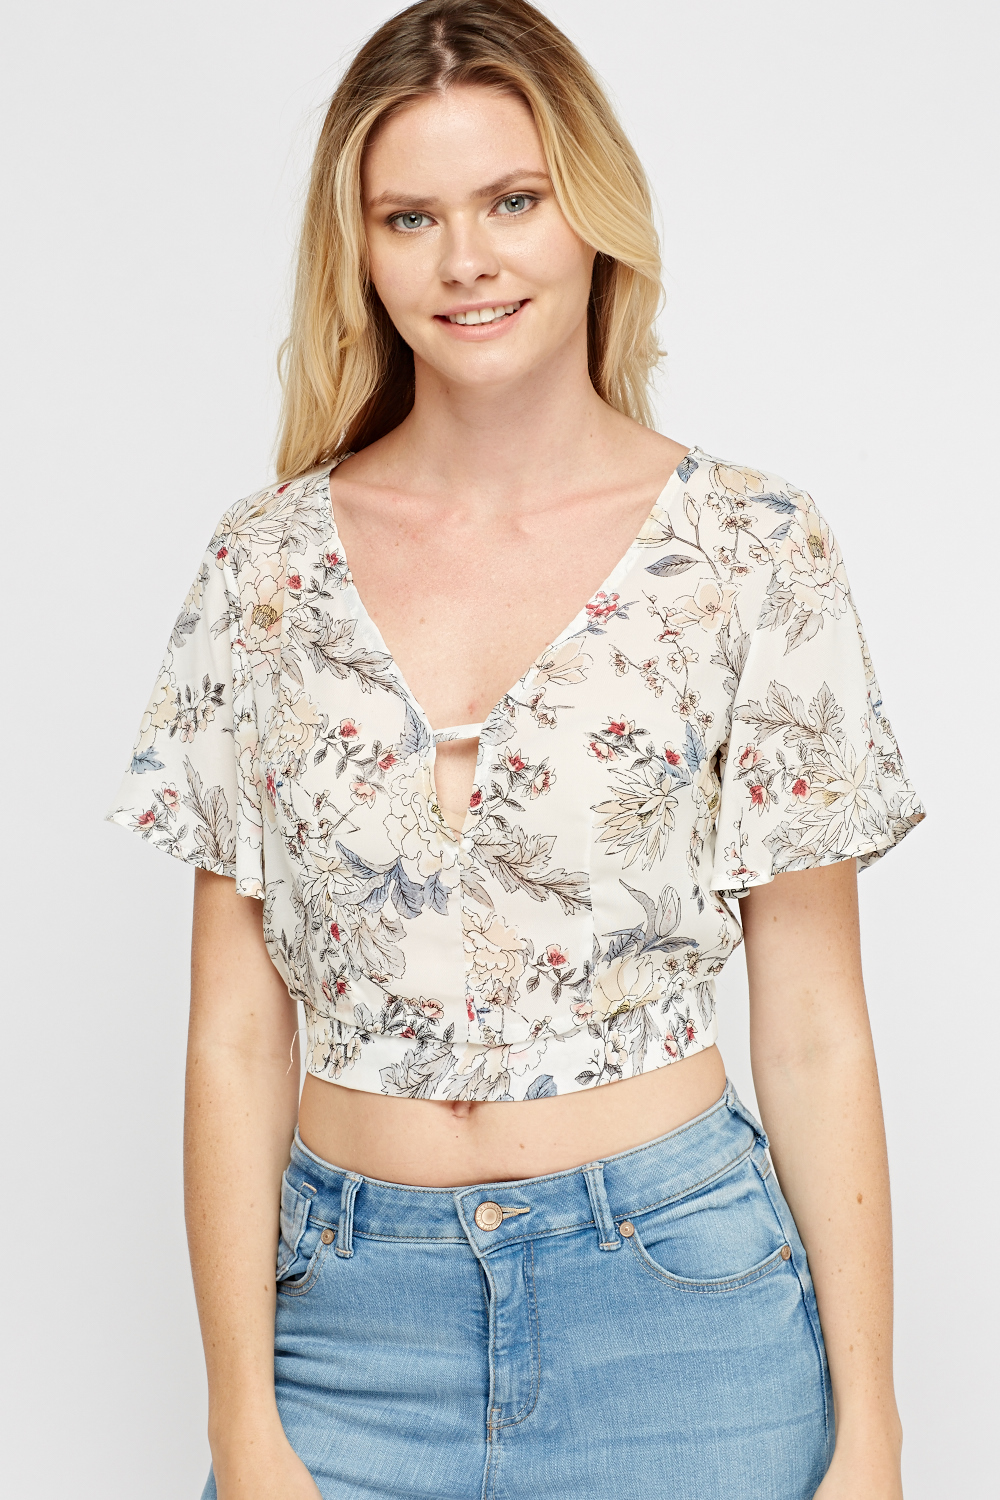 e7c86e453abe9 Sheer Printed Flare Sleeve Crop Top - 3 Colours - Just £5